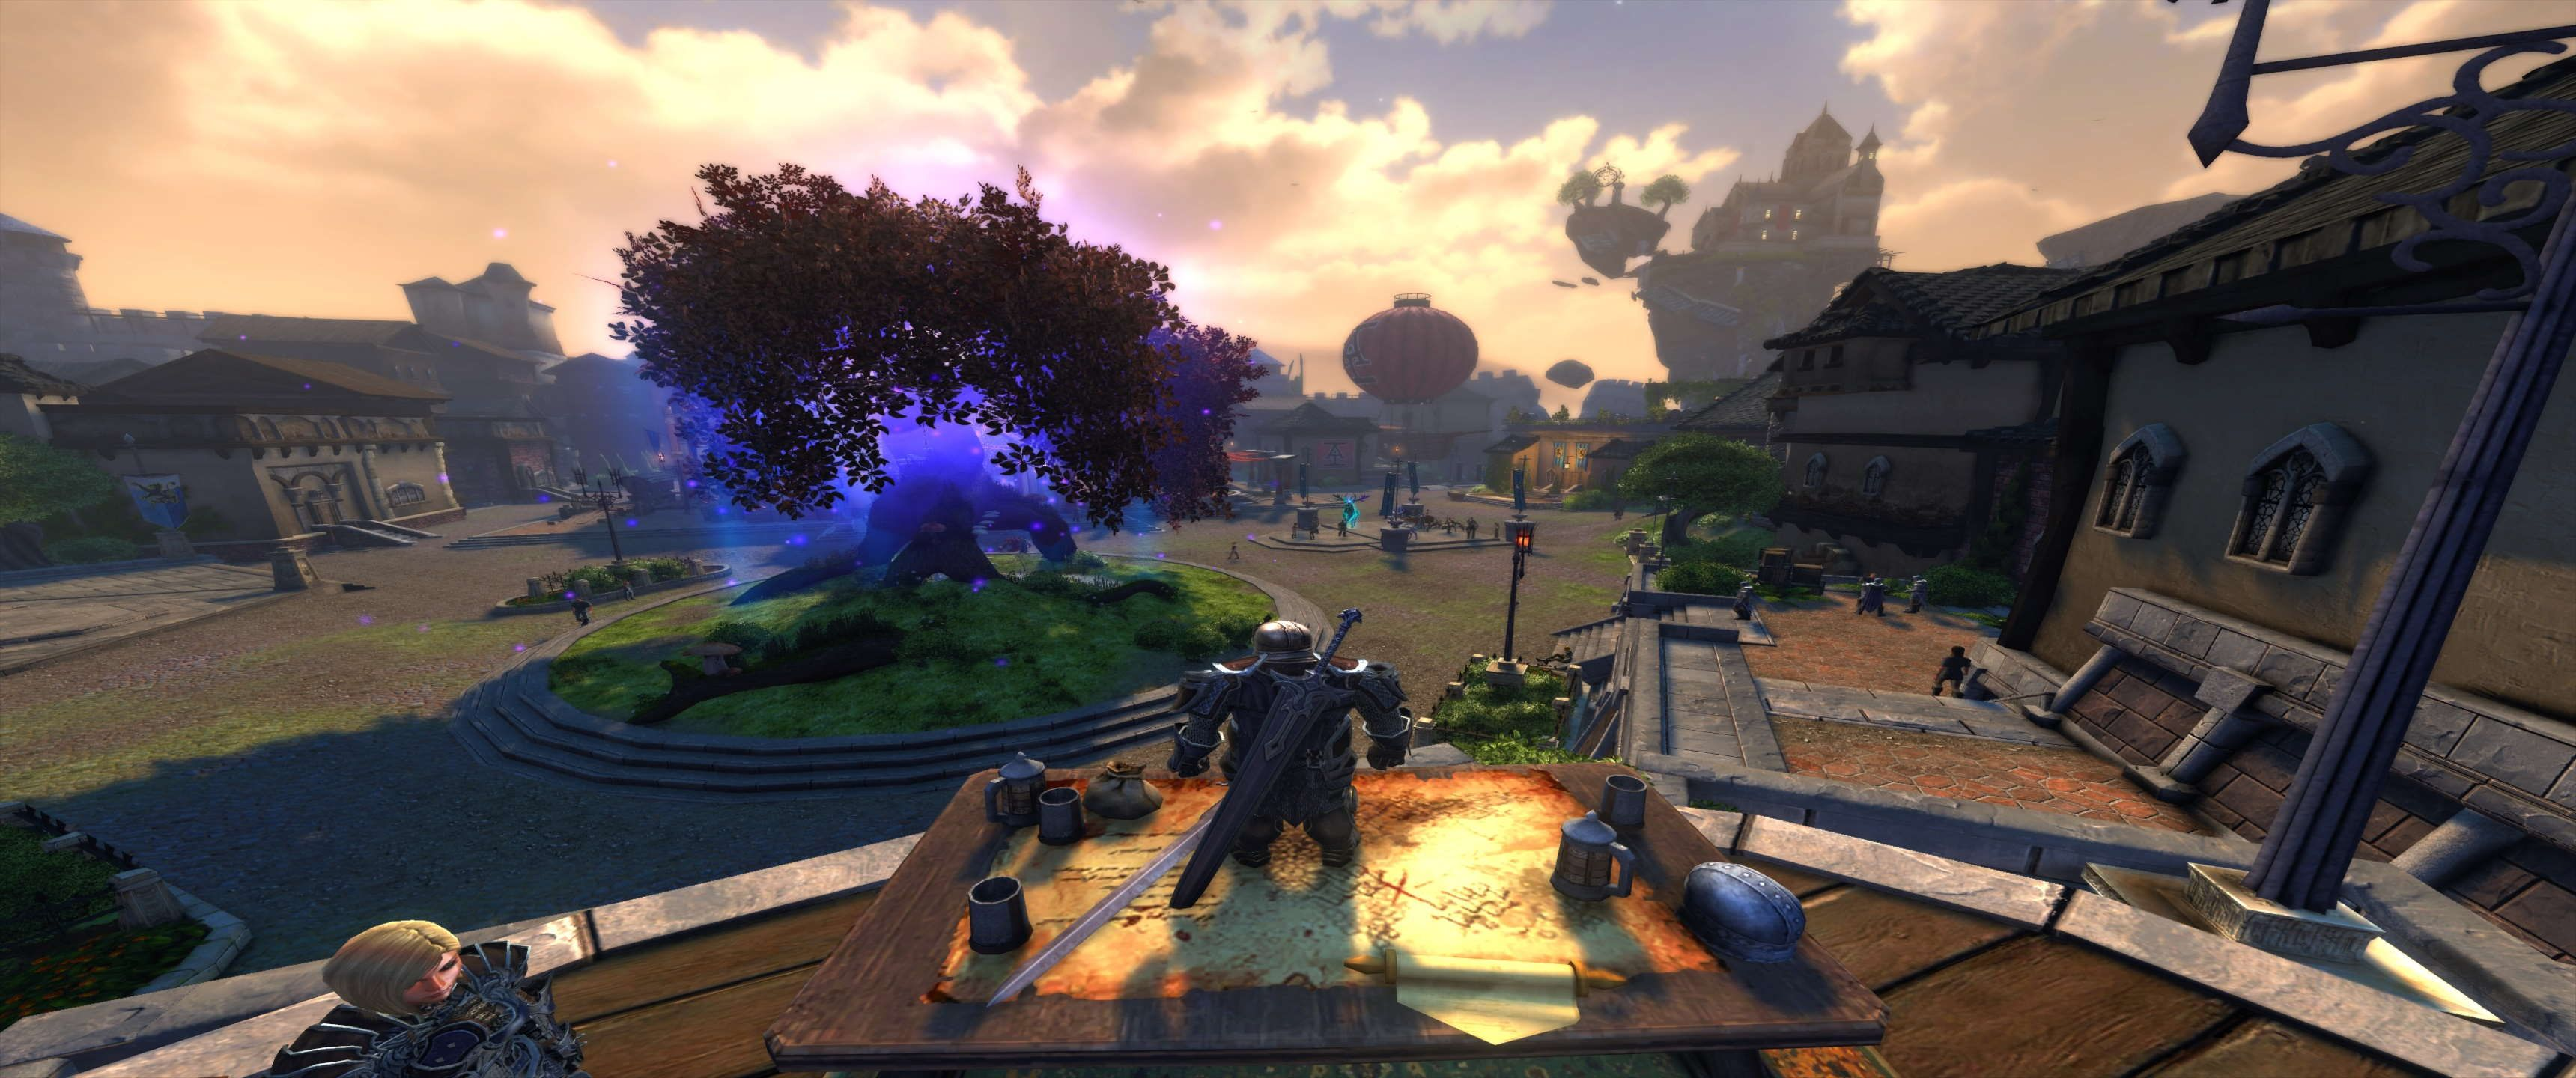 Protector's Enclave Neverwinter